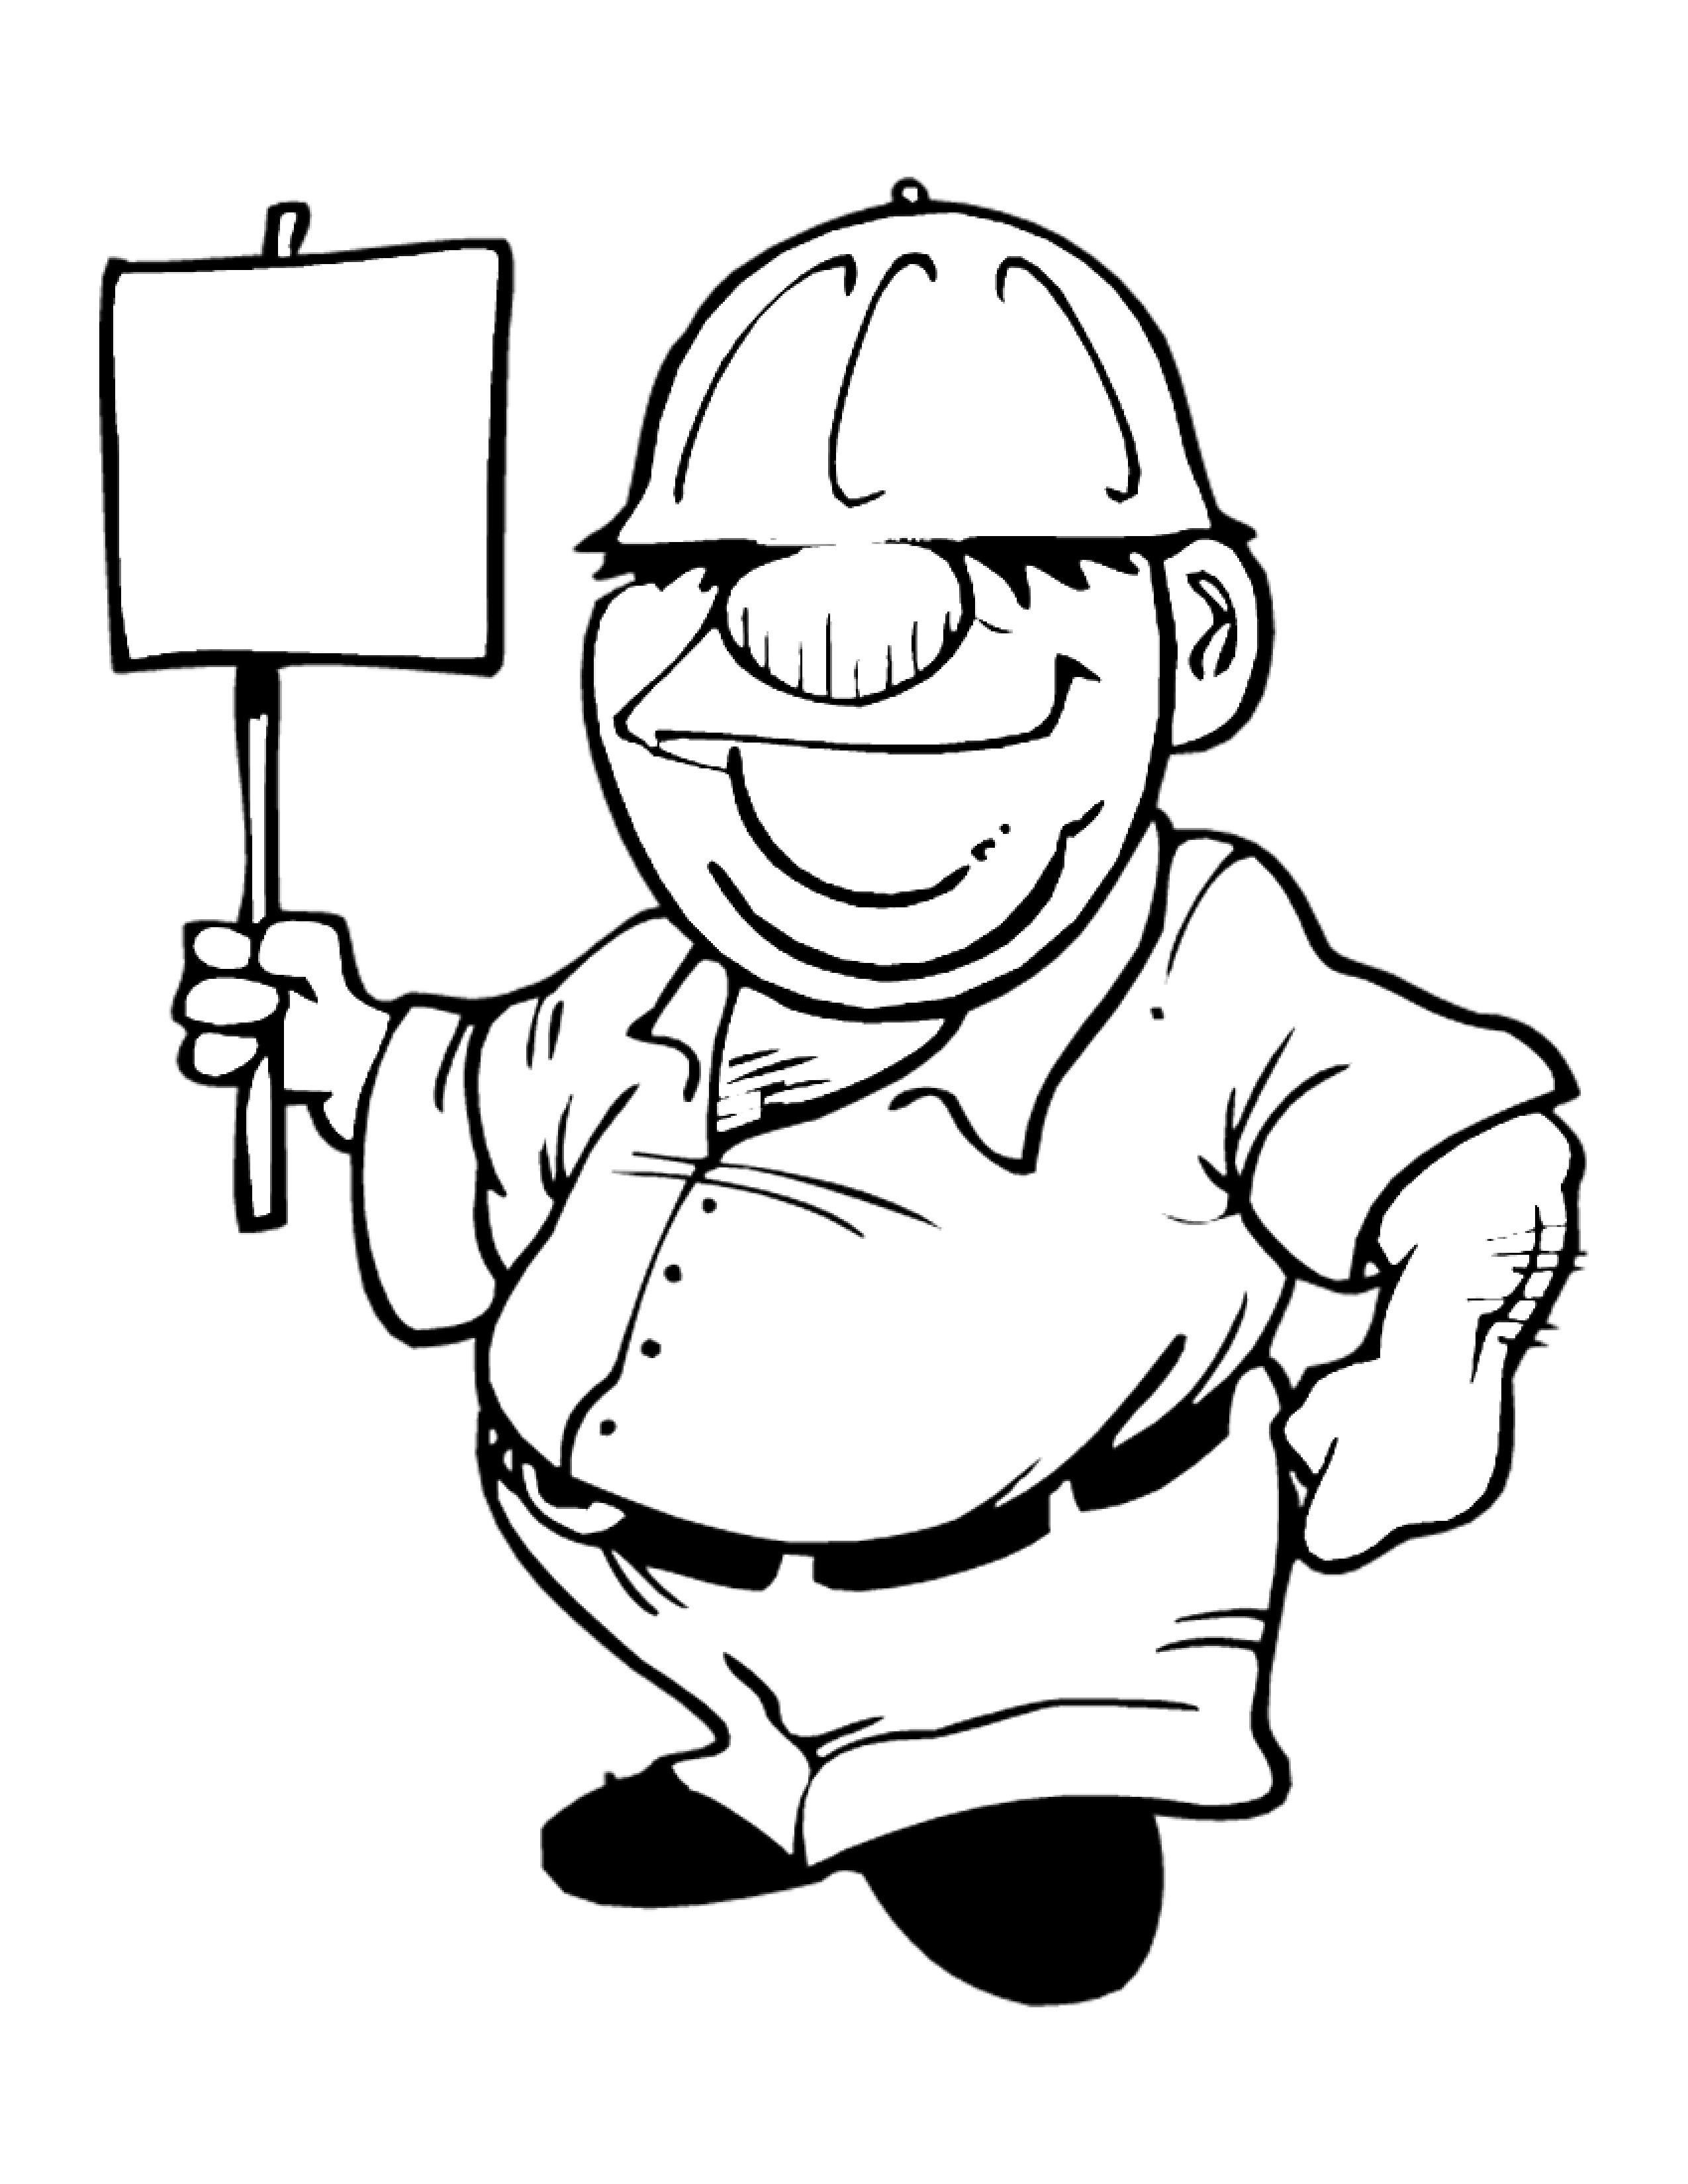 Construction machinery coloring pages - Construction 20equipment 20coloring 20pages